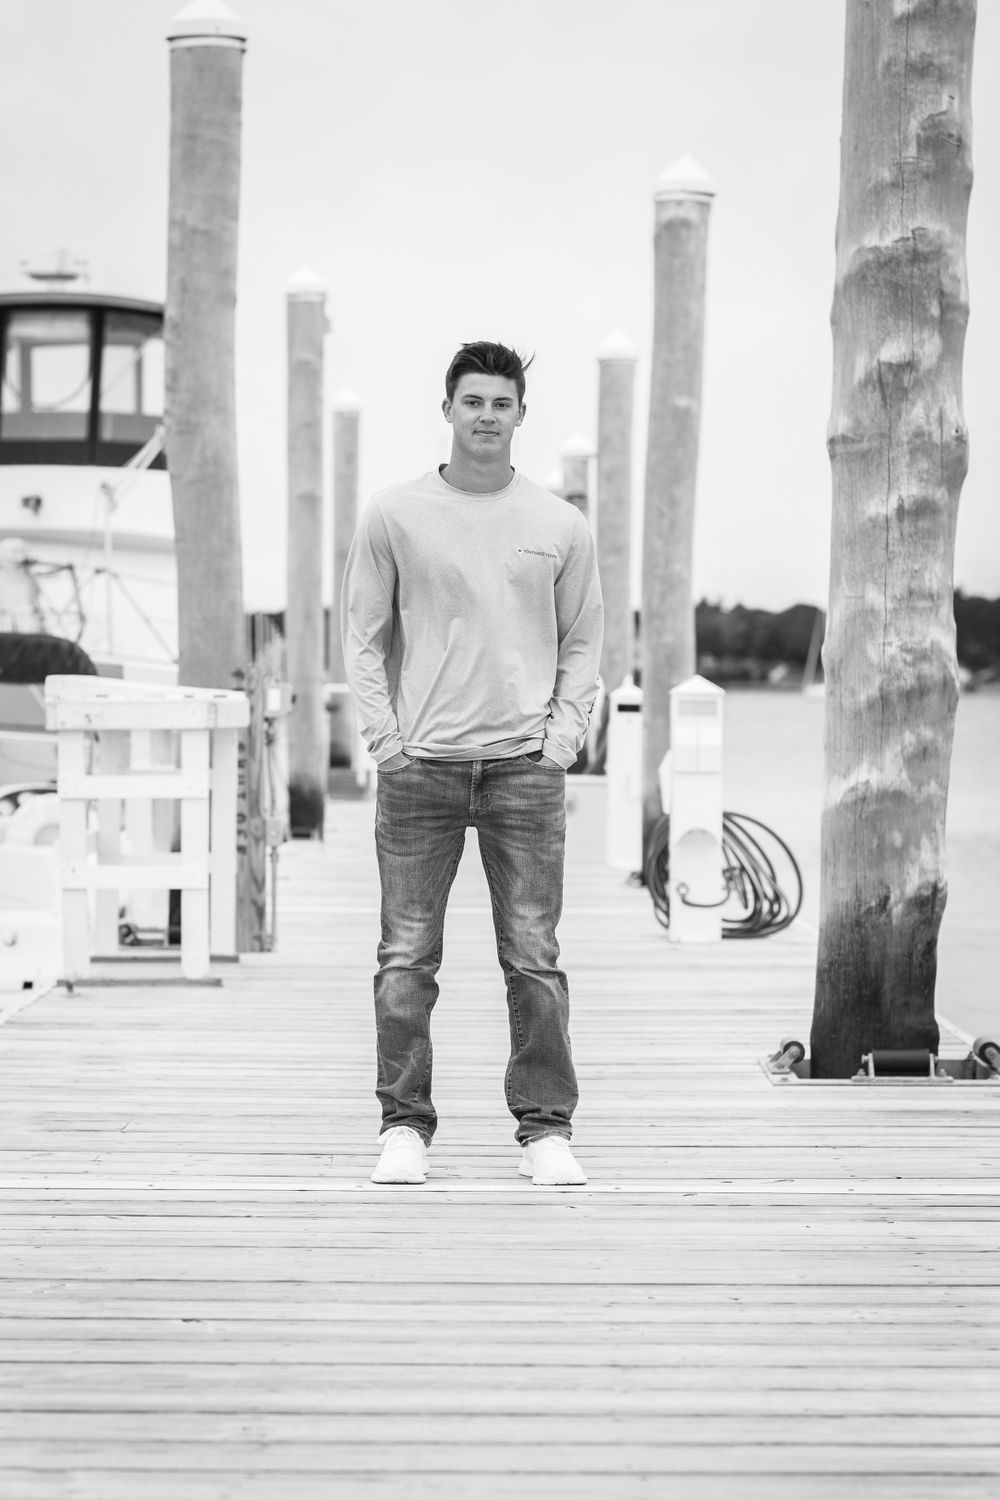 Cape Cod Senior Portrait Picture